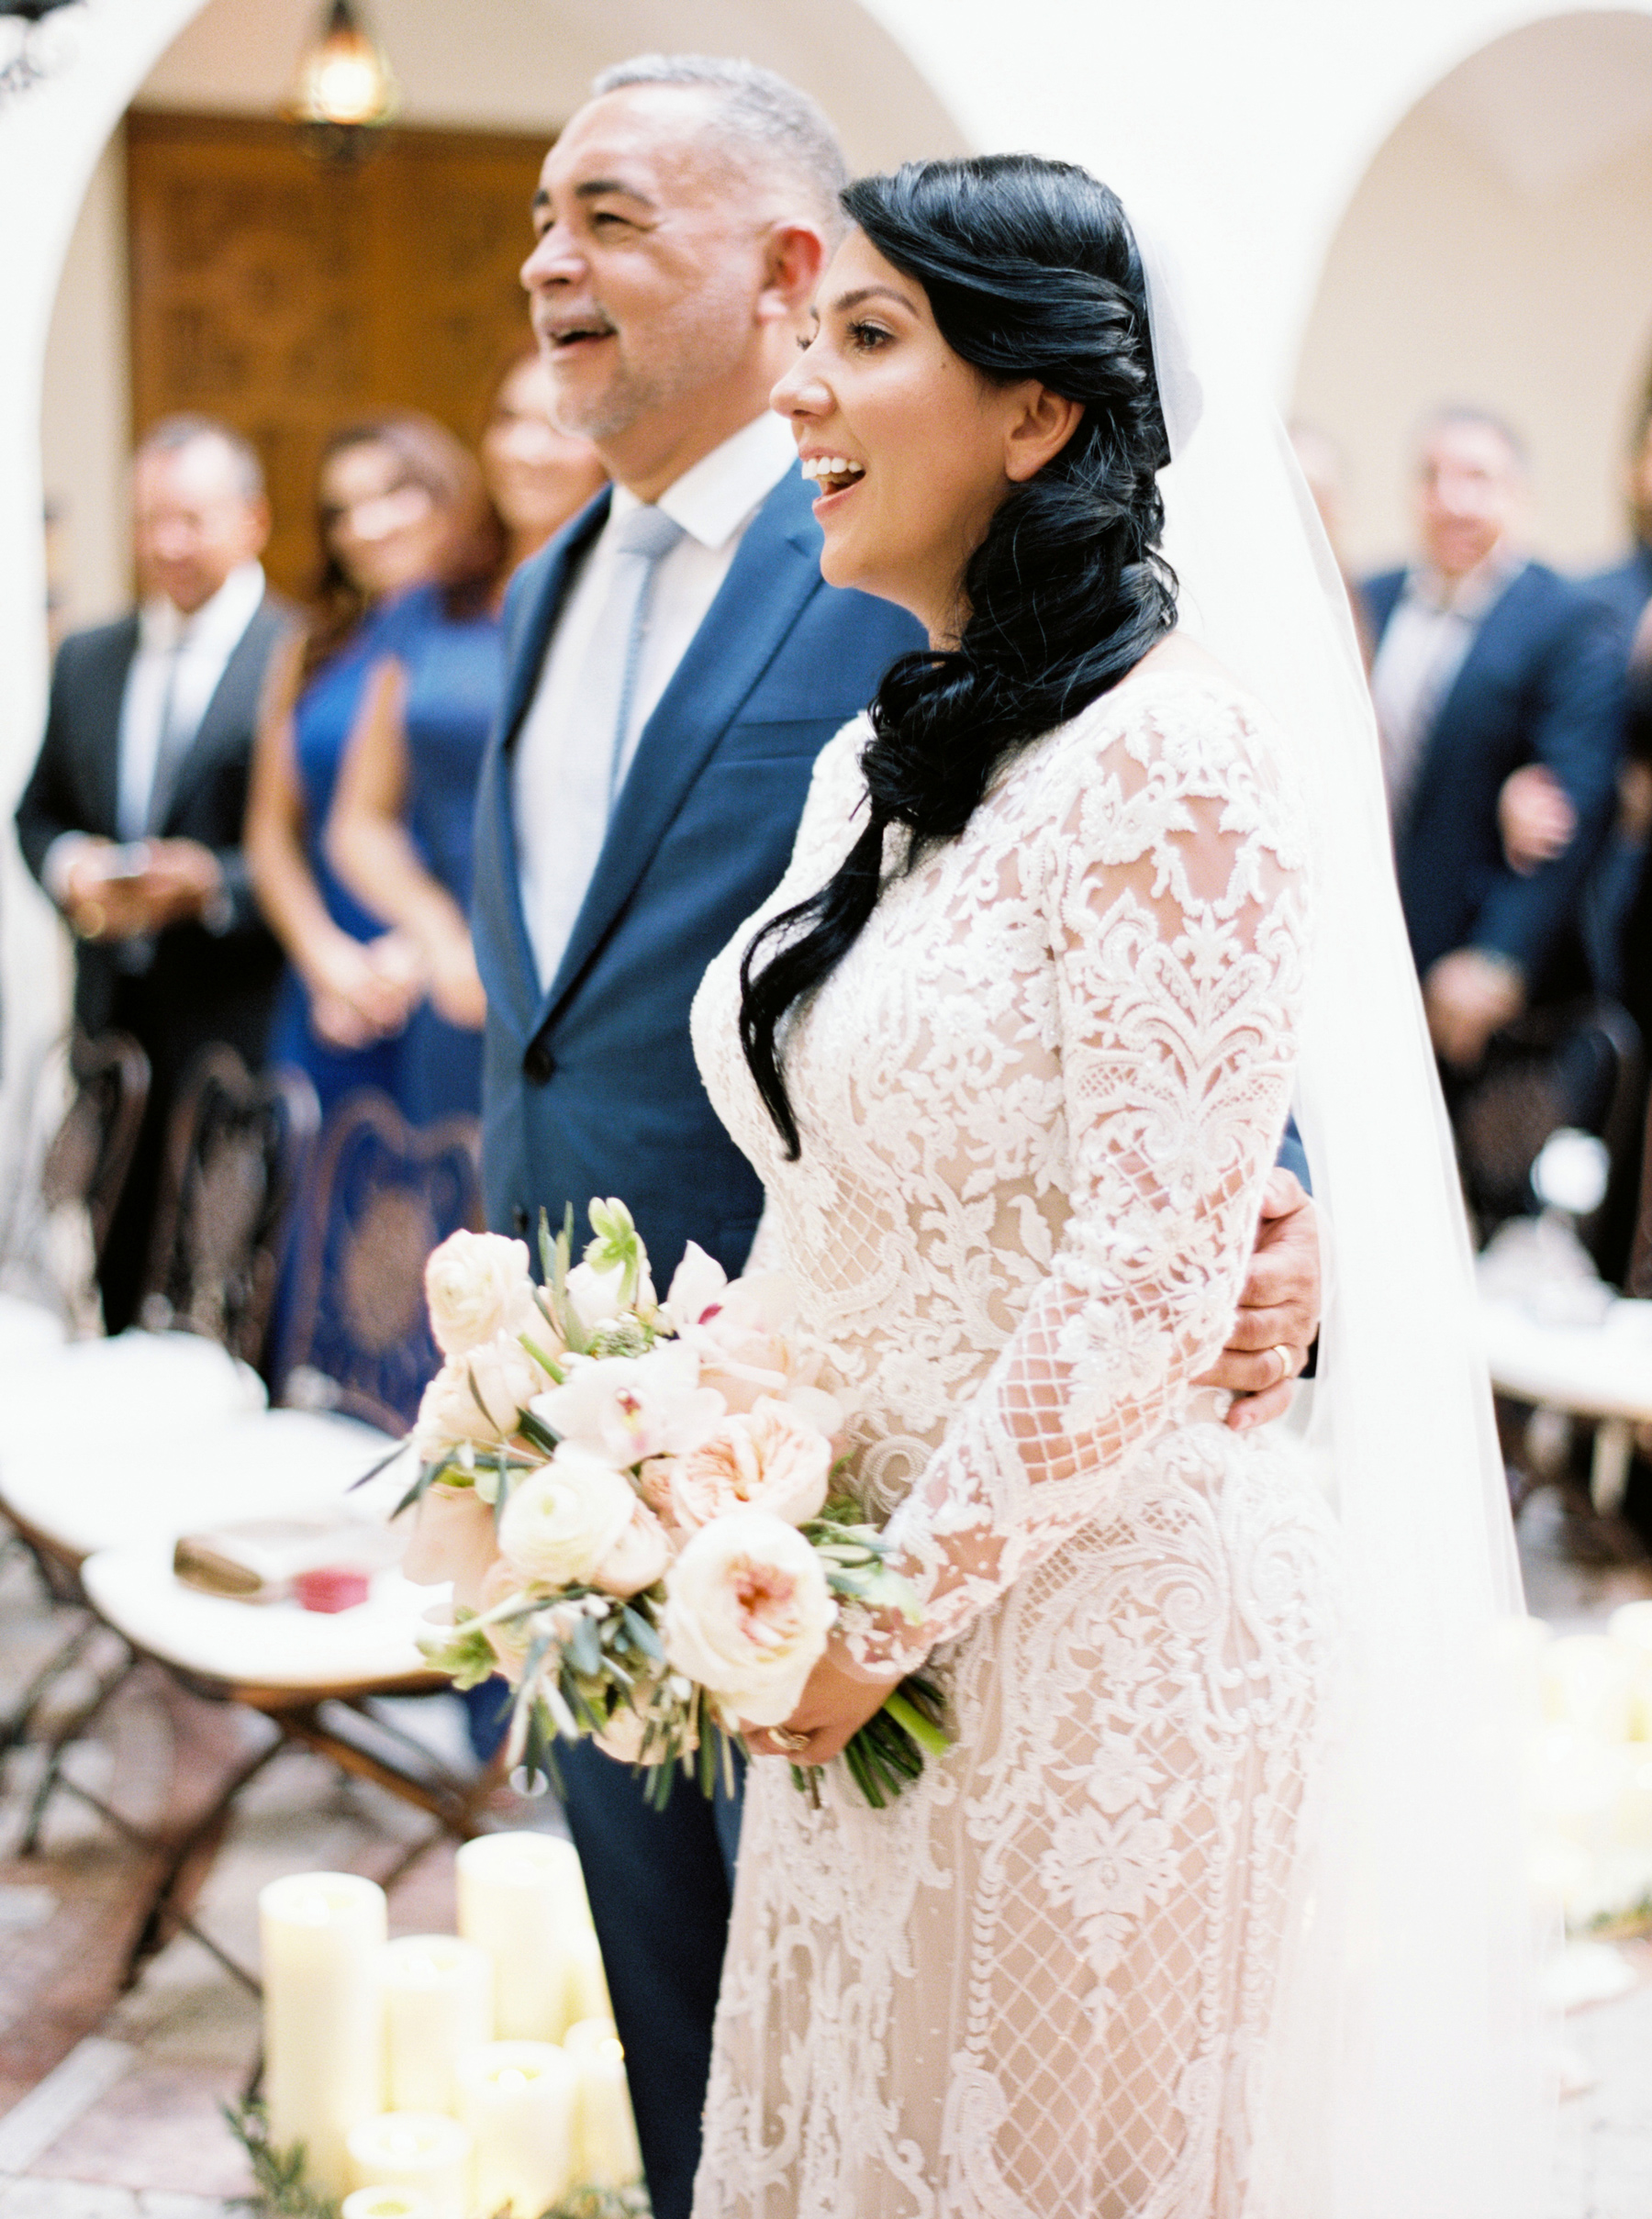 bride and groom smile during wedding ceremony vows